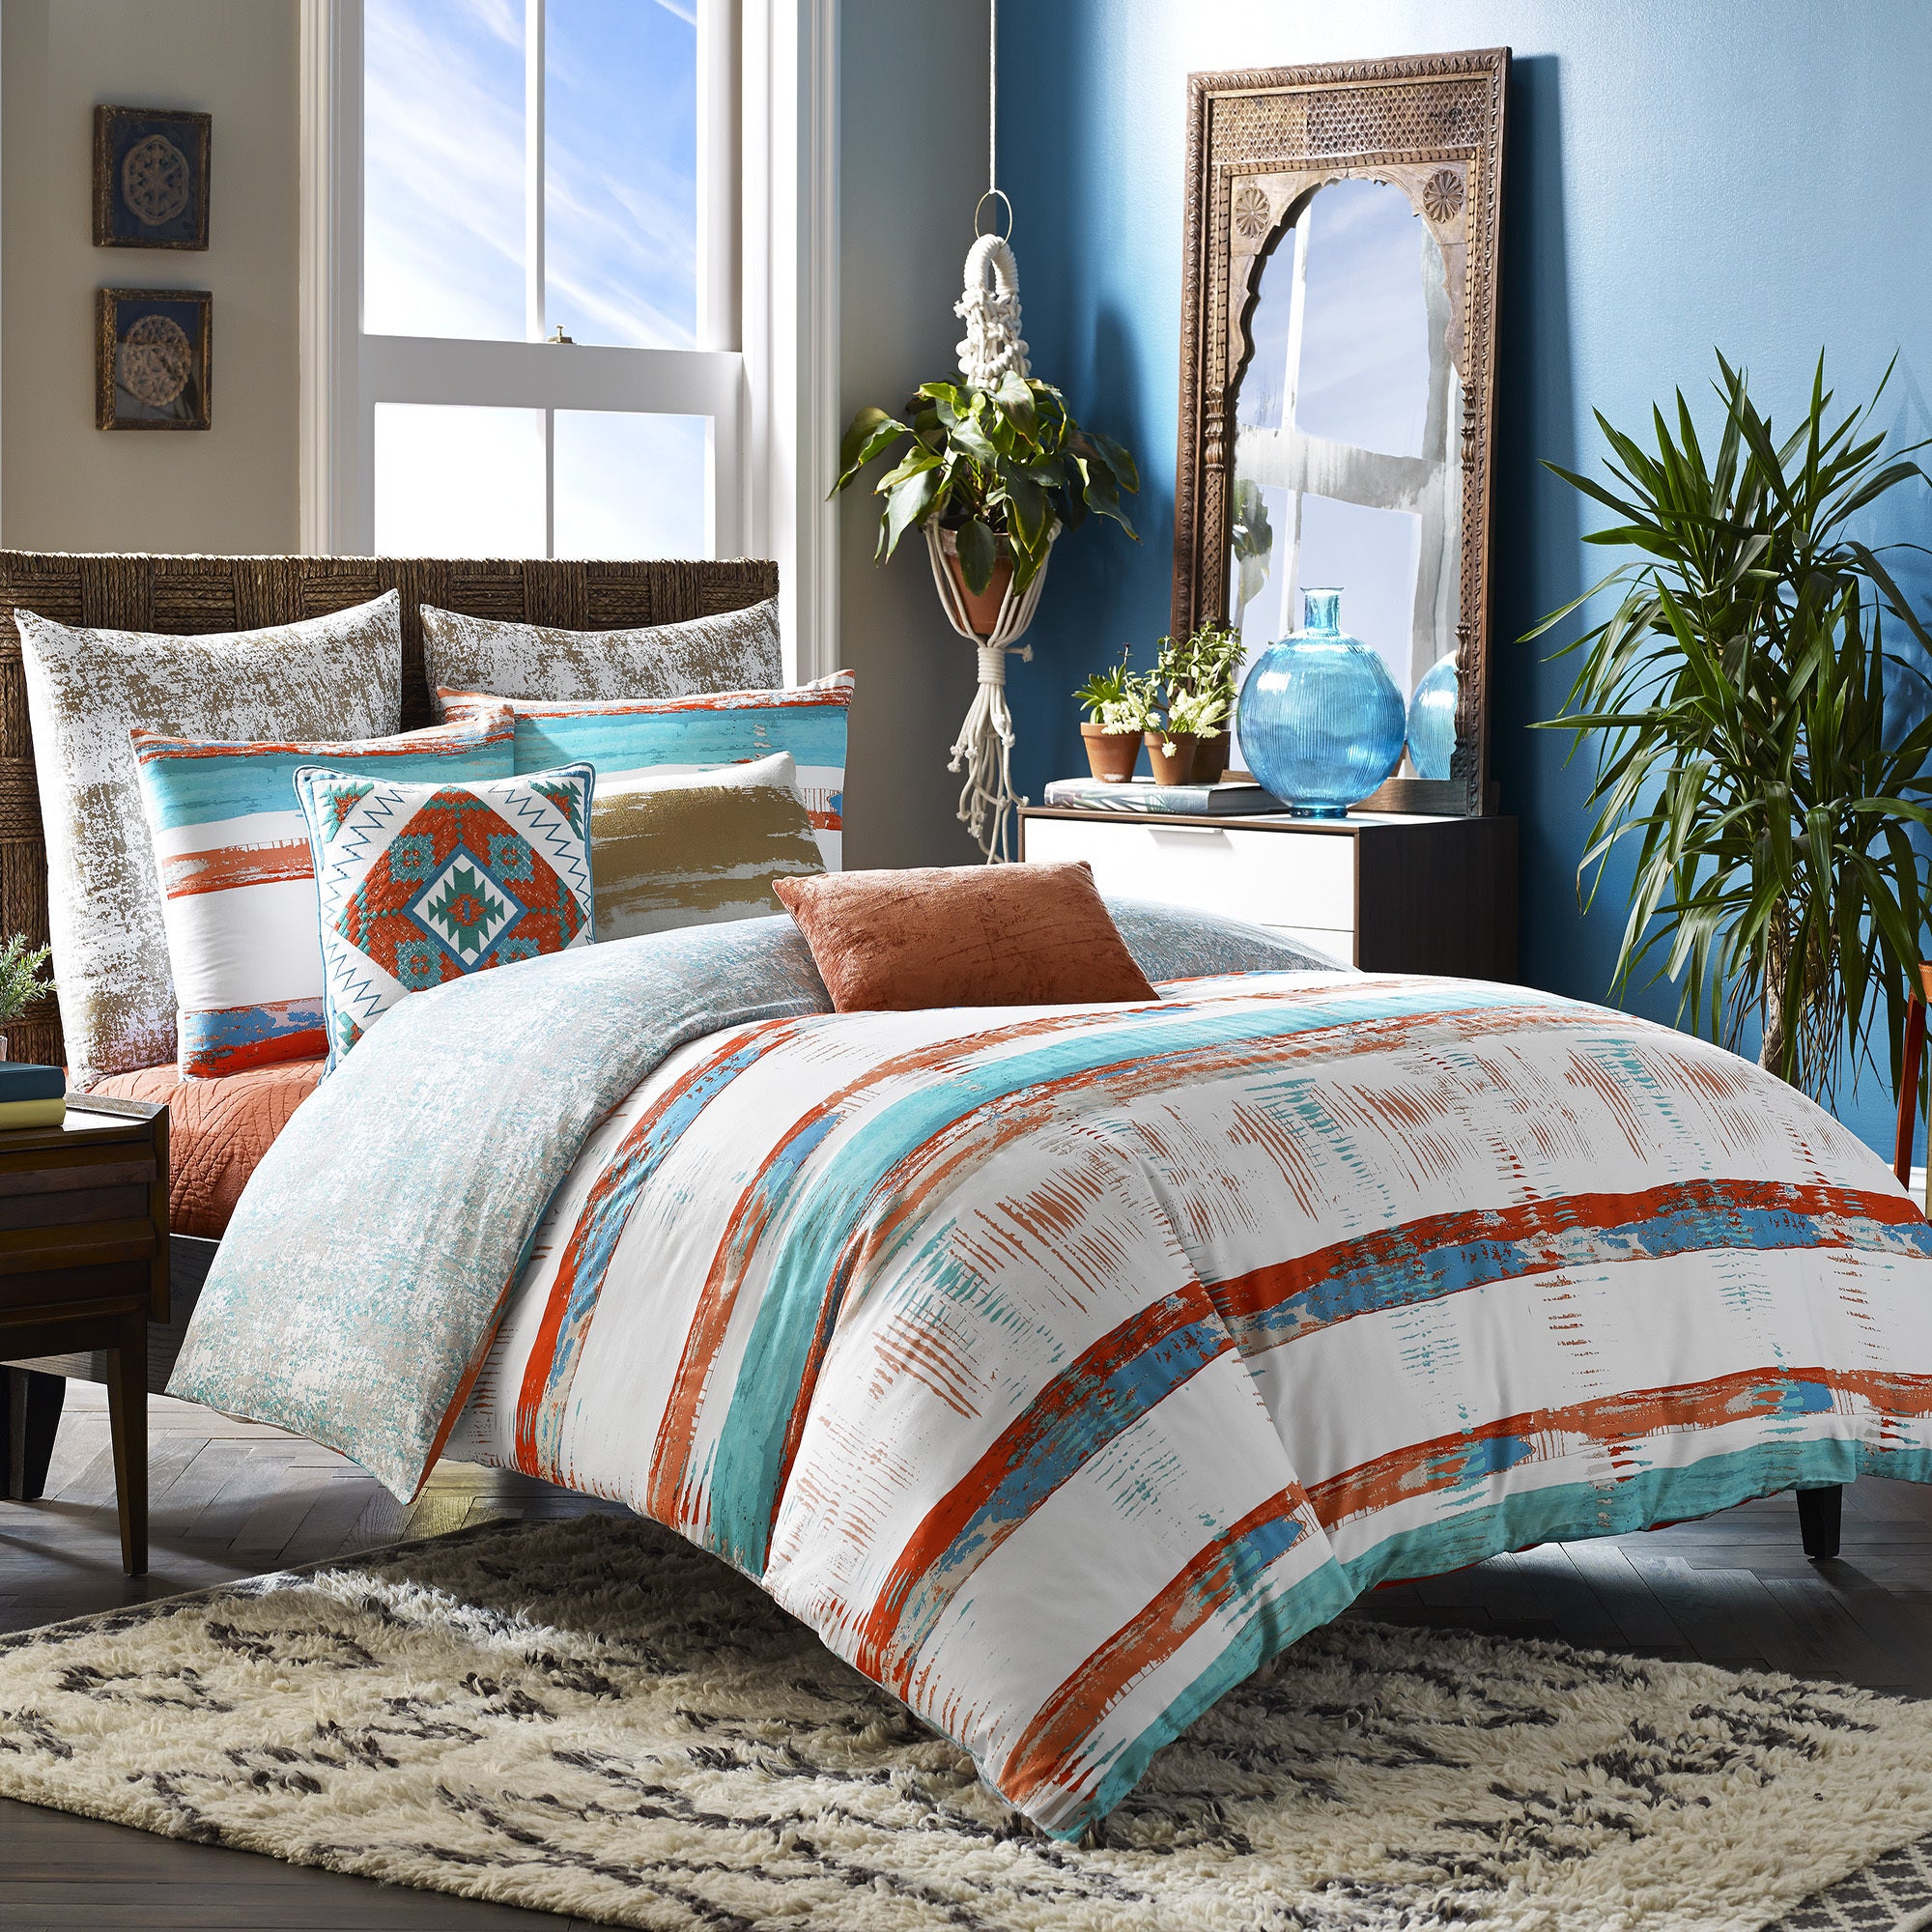 Blissliving Home Siesta 3 Piece Duvet Cover Set (King), W..